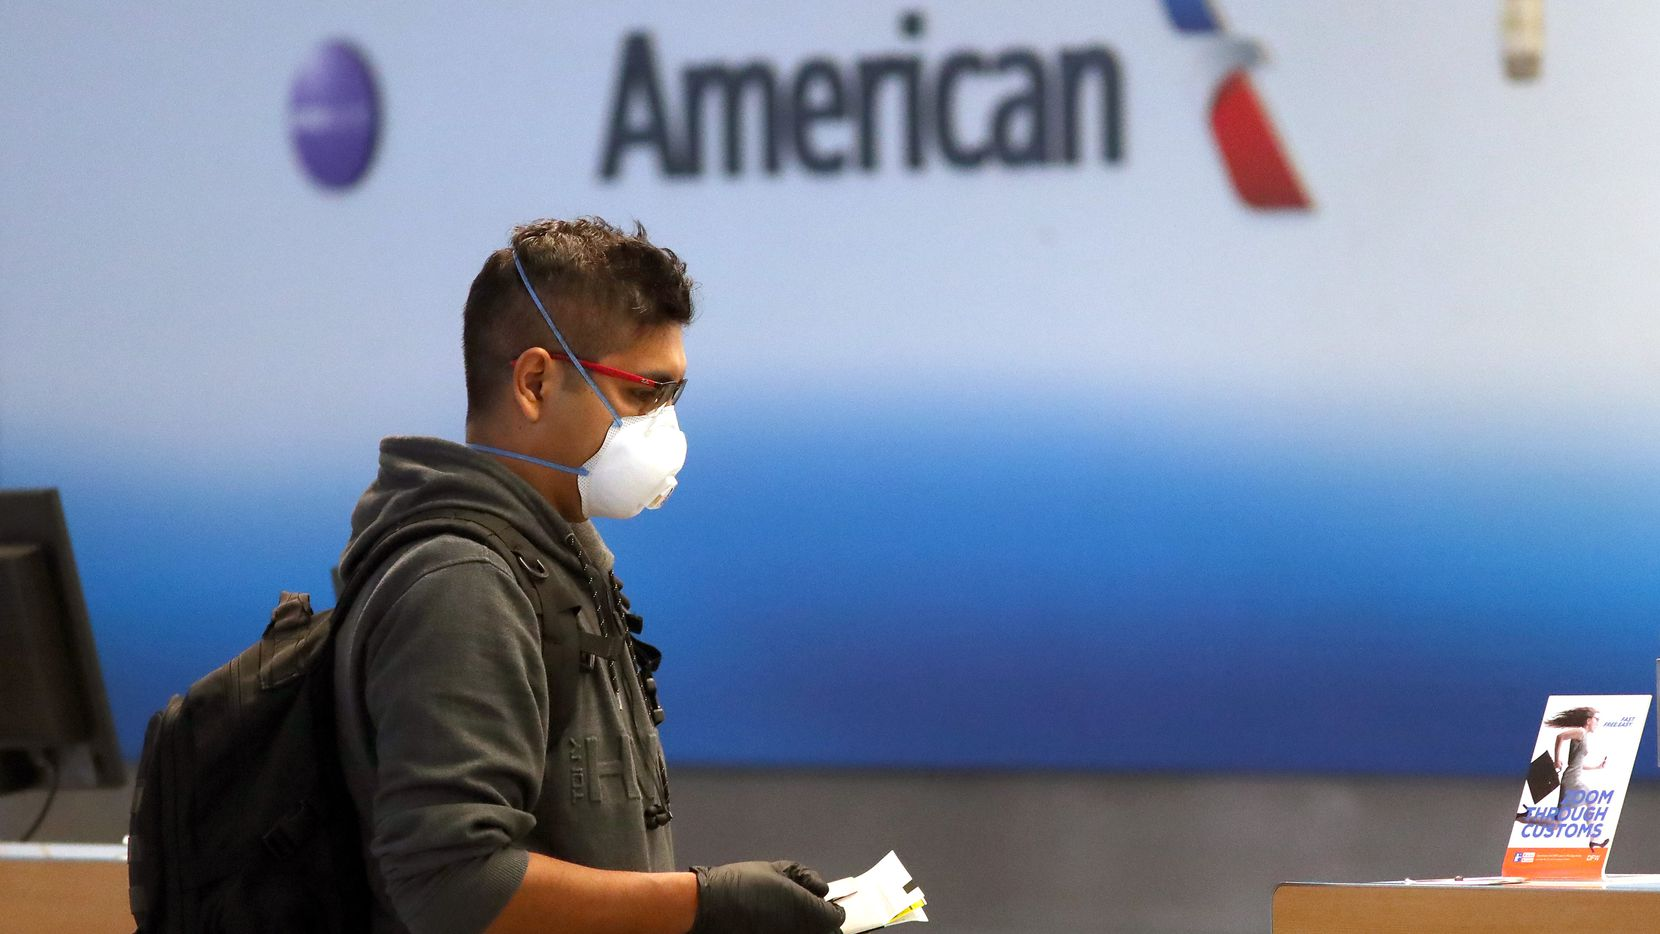 A passenger checked in for an American Airlines flight in Terminal D at DFW International Airport on March 13, 2020. American Airlines announced that it is cutting a third of its international flights amid a major slowdown due to the coronavirus outbreak.